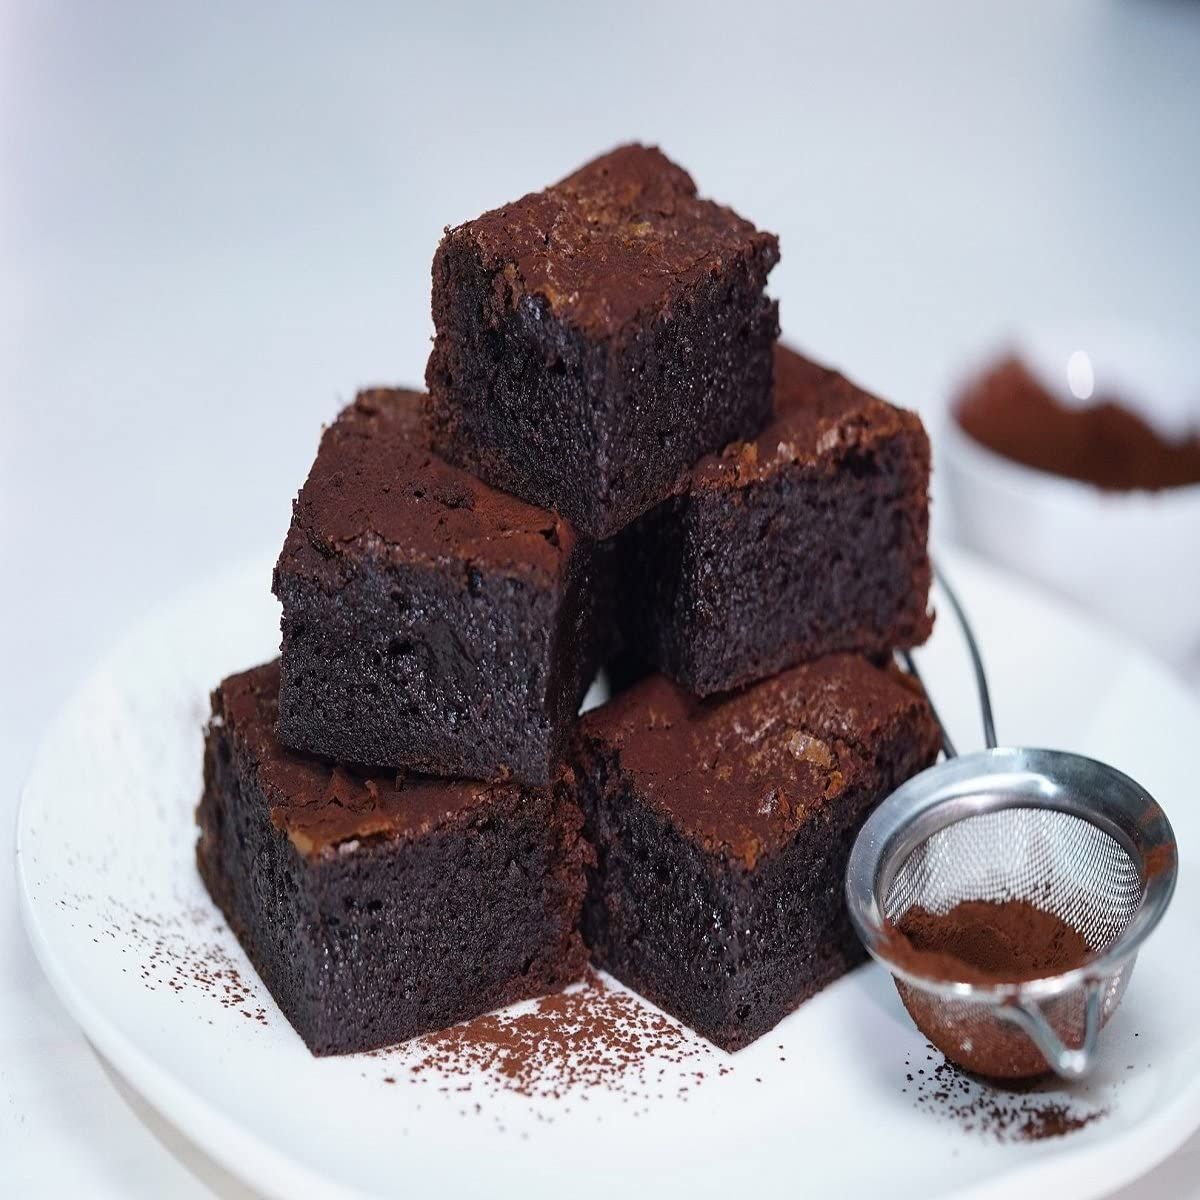 CHOCOLATE BROWNIES FRAGRANCE OIL - 4 OZ - FOR CANDLE & SOAP MAKING BY VIRGINIA CANDLE SUPPLY - FREE S&H IN USA